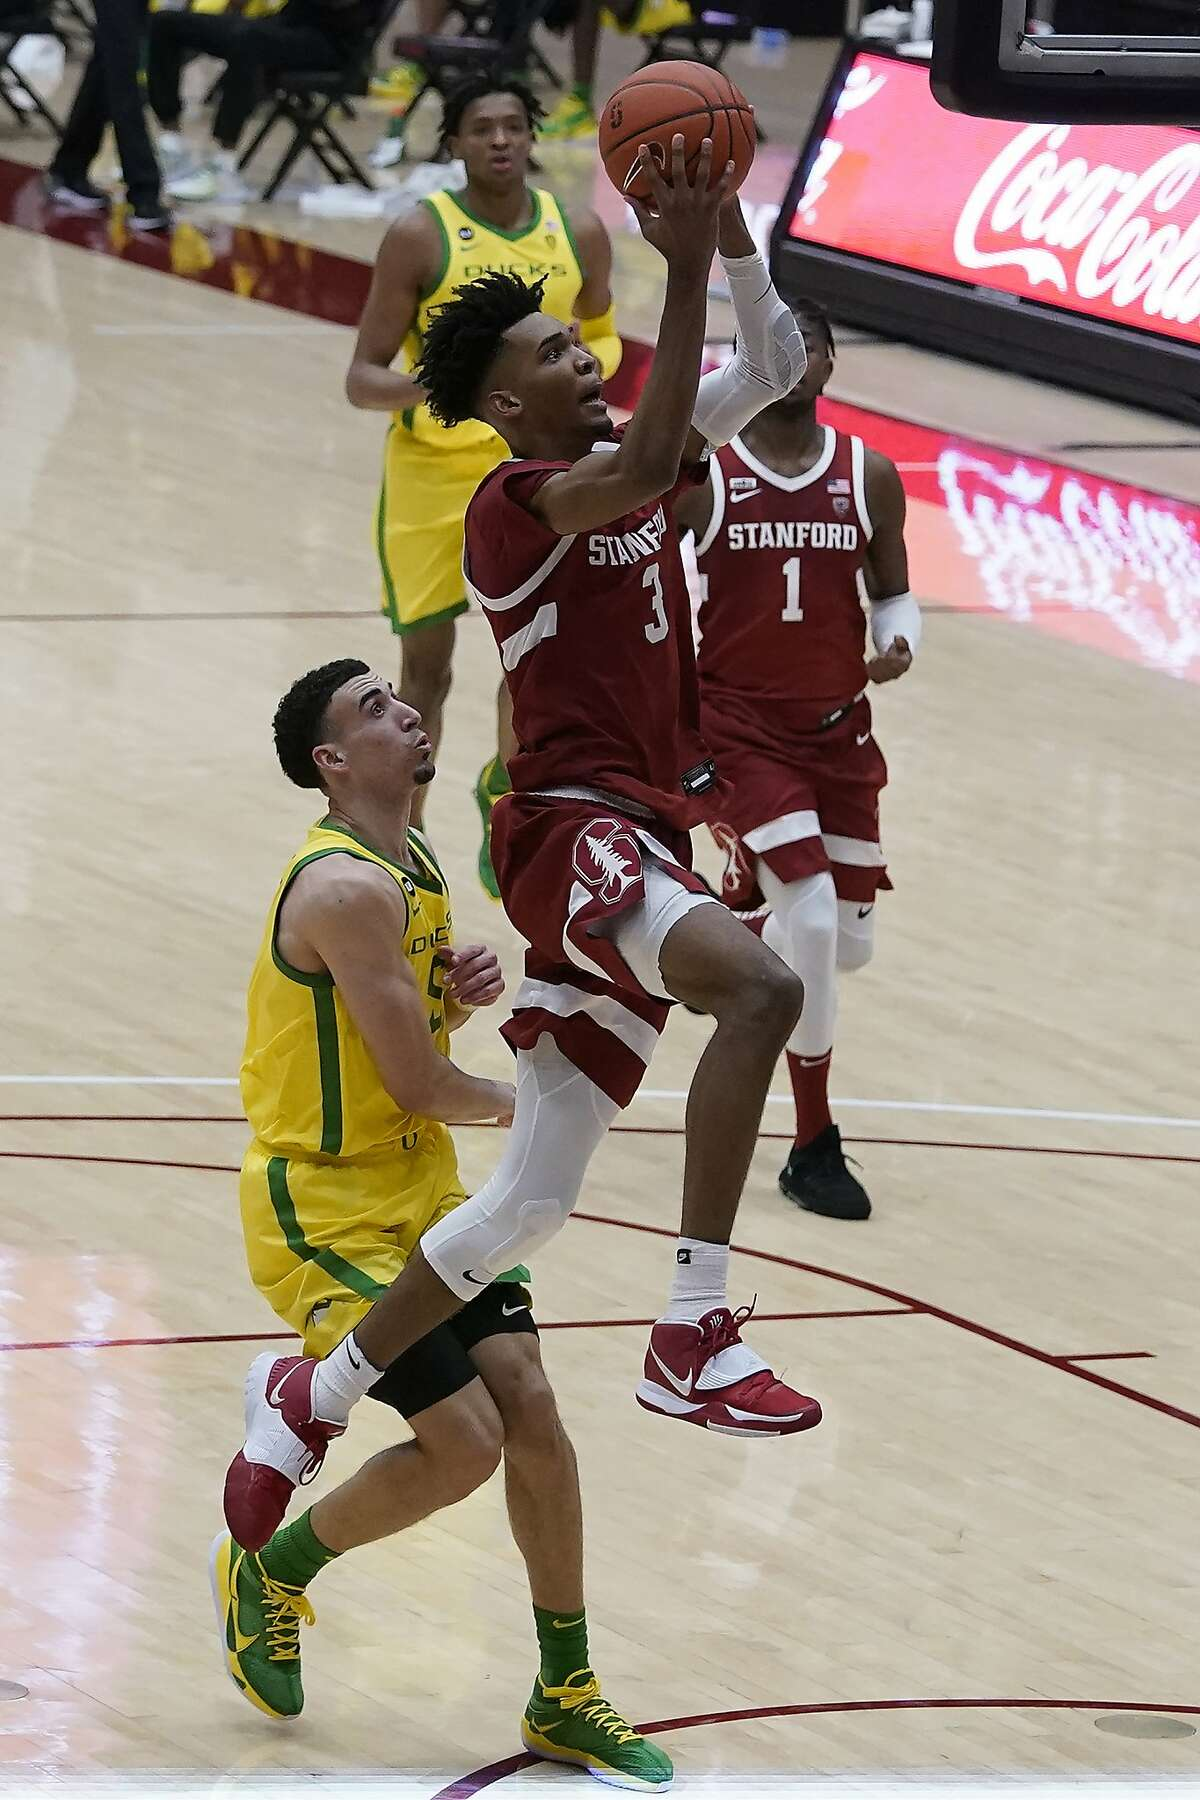 Stanford forward Ziaire Williams (3) shoots against Oregon during an NCAA college basketball game in Stanford, Calif., Thursday, Feb. 25, 2021. (AP Photo/Jeff Chiu)